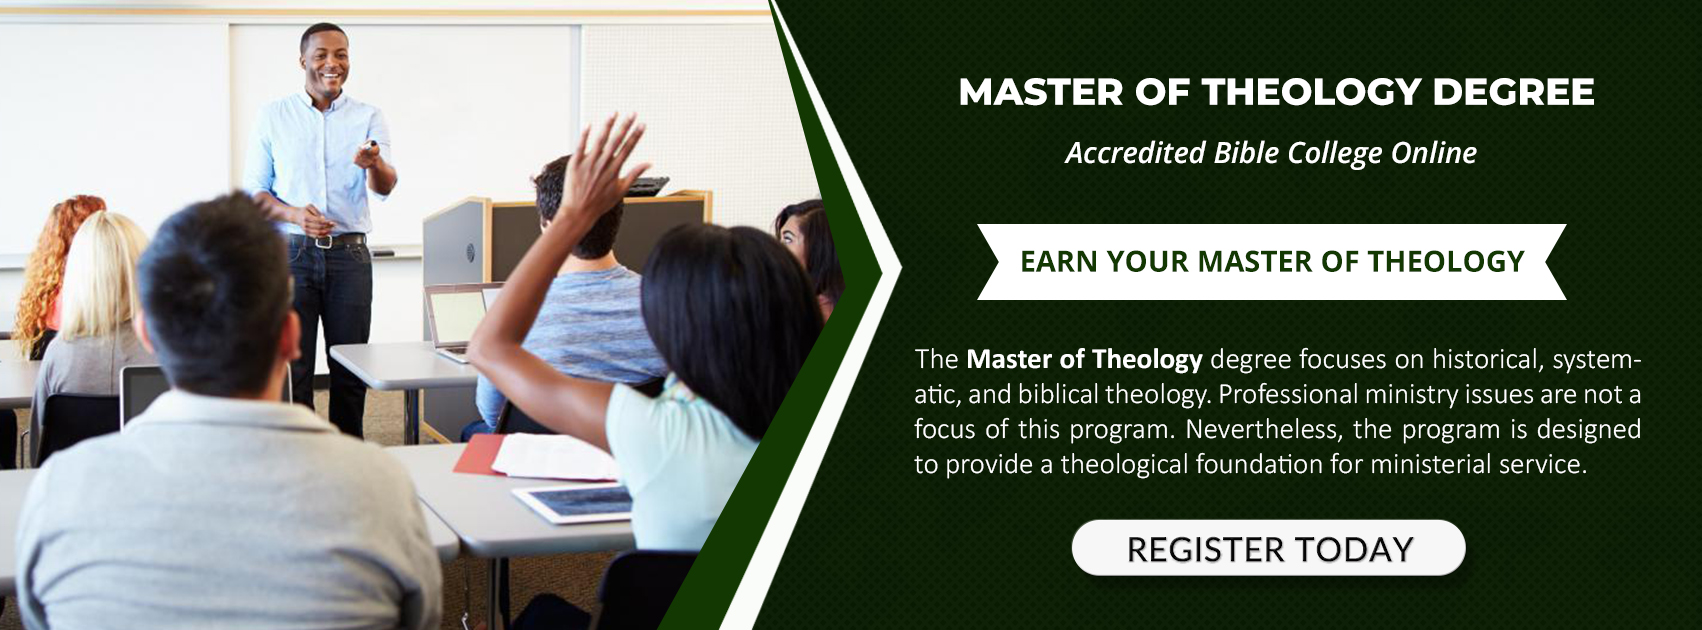 Master of Theology Degree_Bible College Banner.jpg